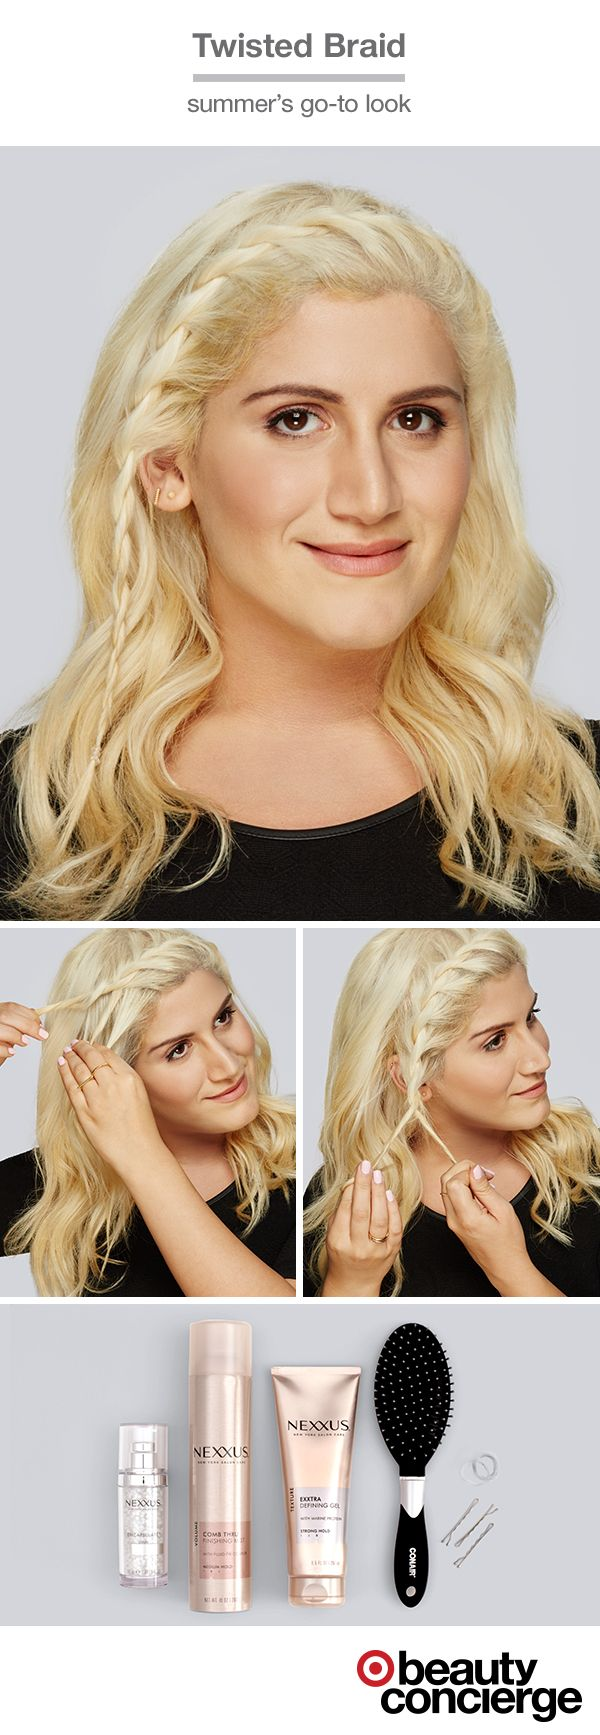 How to create a twisted hair braid. Target Beauty Concierge Neda shows how to get the look. Begin with hair parted down the middle, then separate a section of hair on each side. Pull back remaining hair. Comb smoothing gel into hair for texture. Decide which side you want your braid to start, then begin to braid. Keep tight alongside the head, twisting hair as you incorporate it into the braid. Tie off the braid with a clear elastic. Undo the rest of hair from the pony for the finished look.